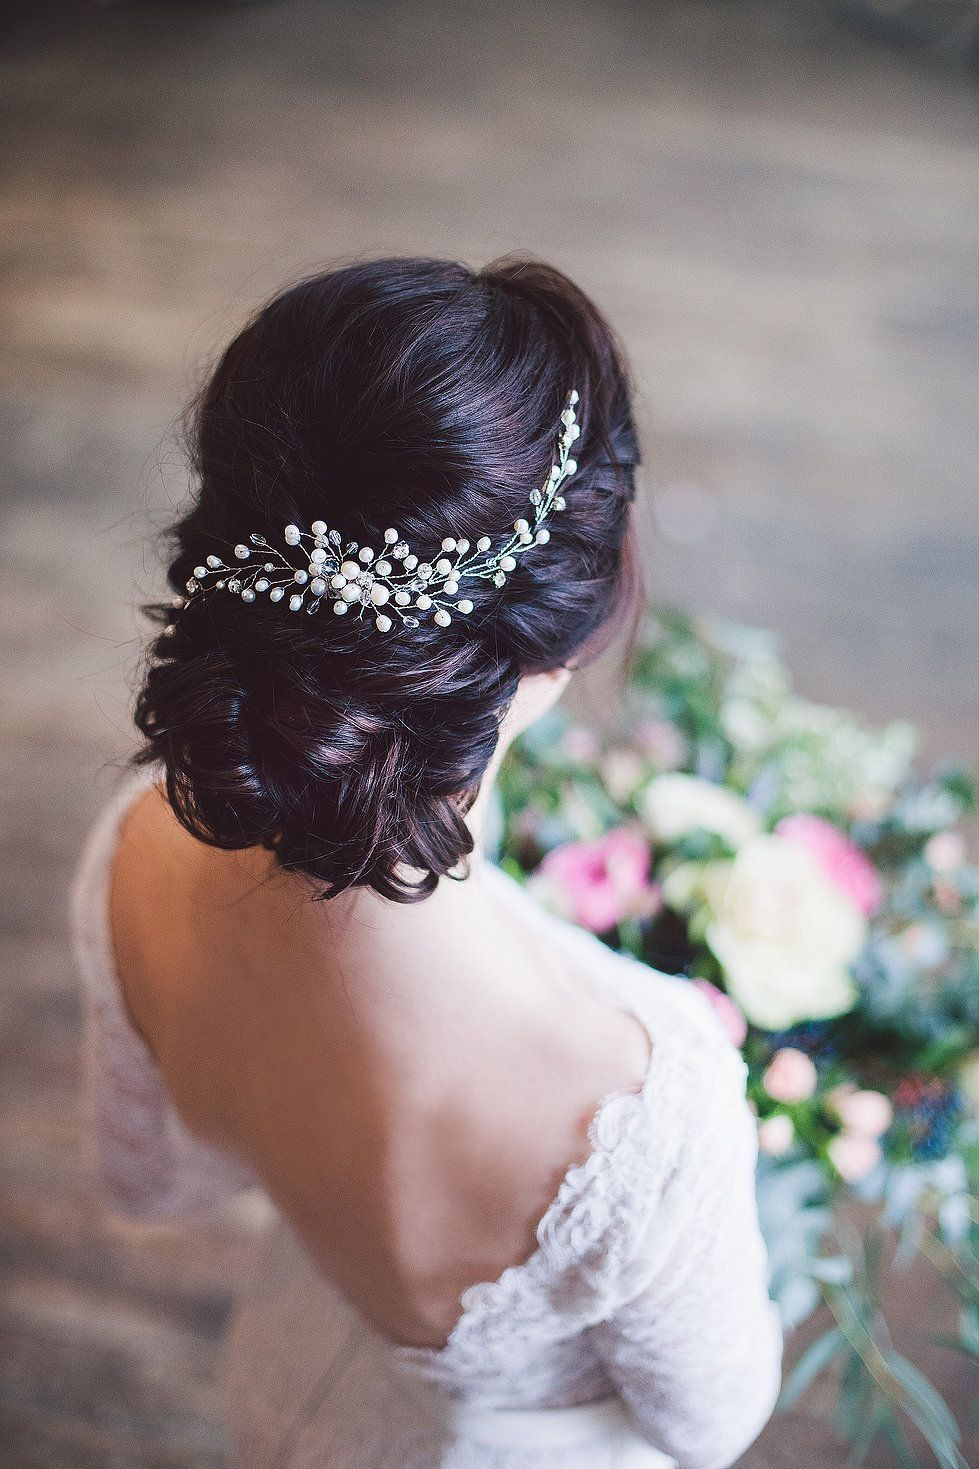 Now You Can Have Amazing Wedding Hair: Updo Hairstyle Ideas – Part 1 Now You Can Have Amazing Wedding Hair: Updo Hairstyle Ideas – Part 1 new foto